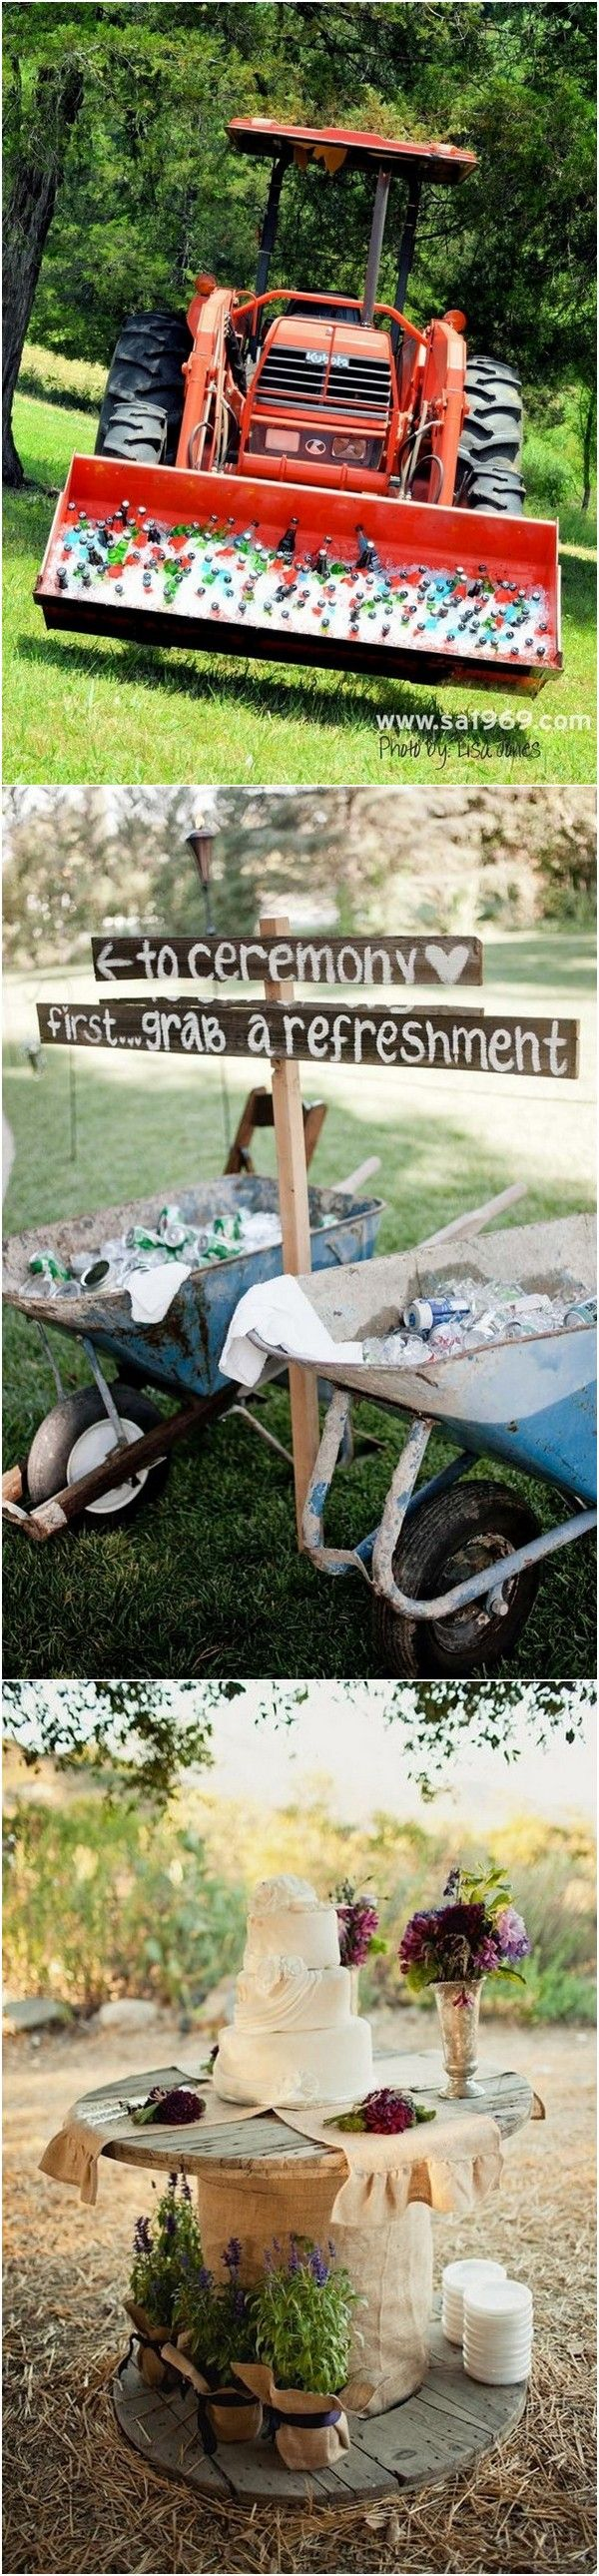 country wedding drink and food station ideas #weddingideas #countrywedding #rusticwedding #farmwedding #wedding2018